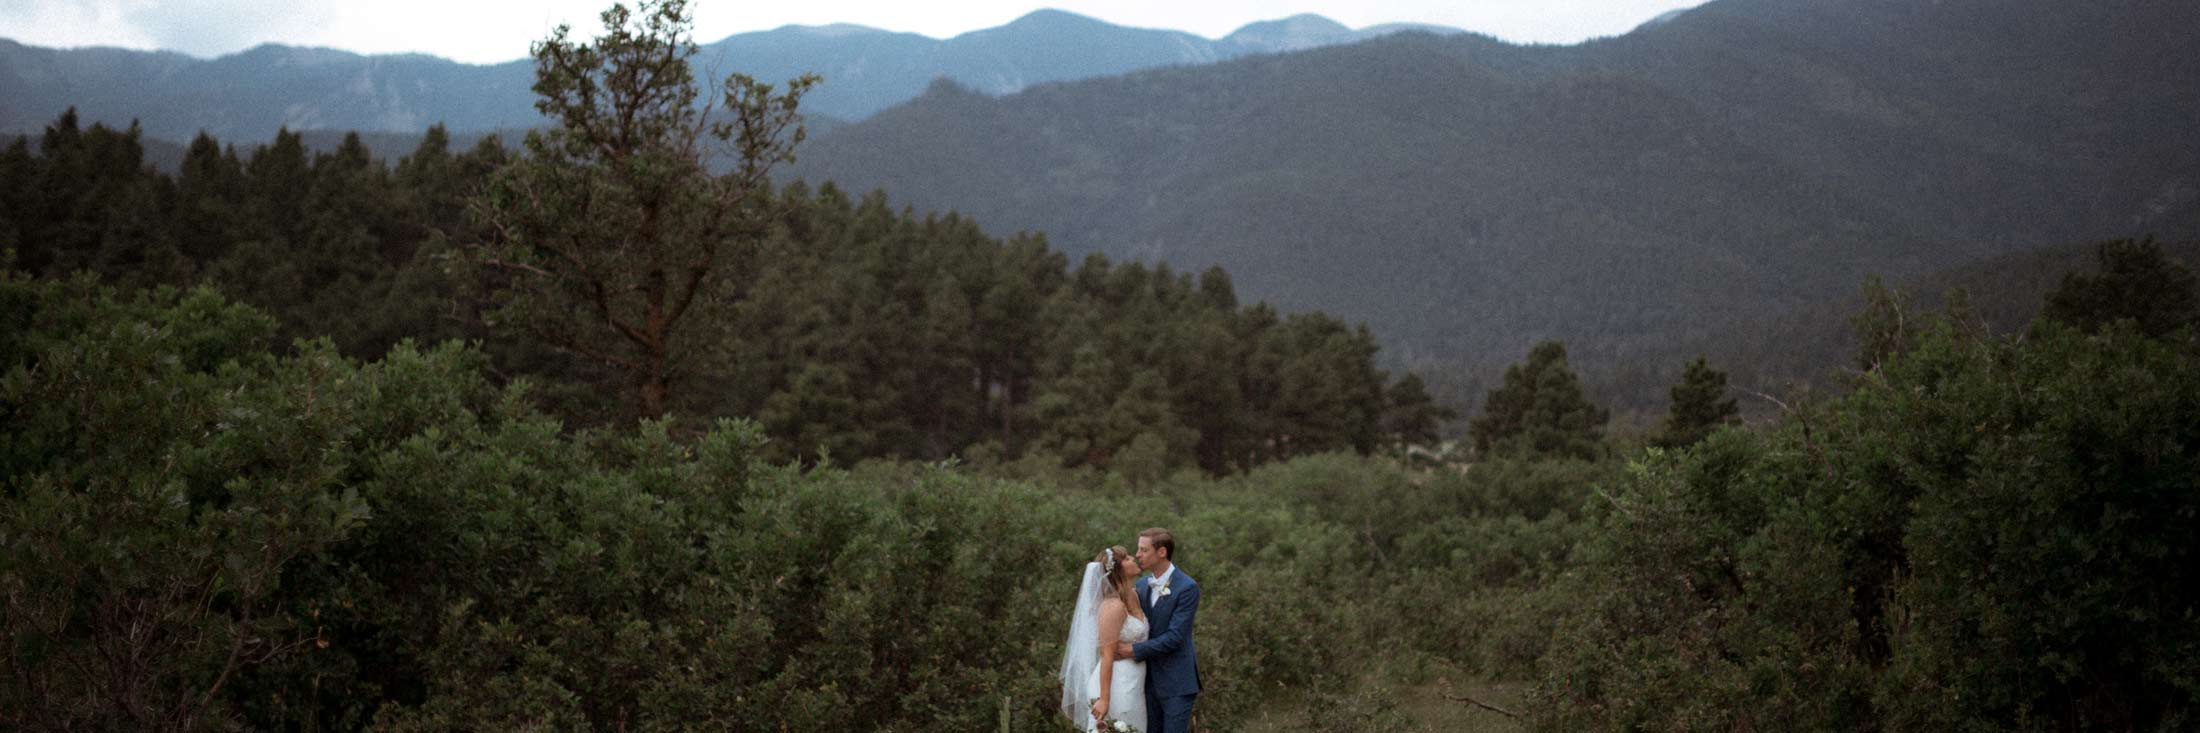 Colorado Mountain Wedding Venue